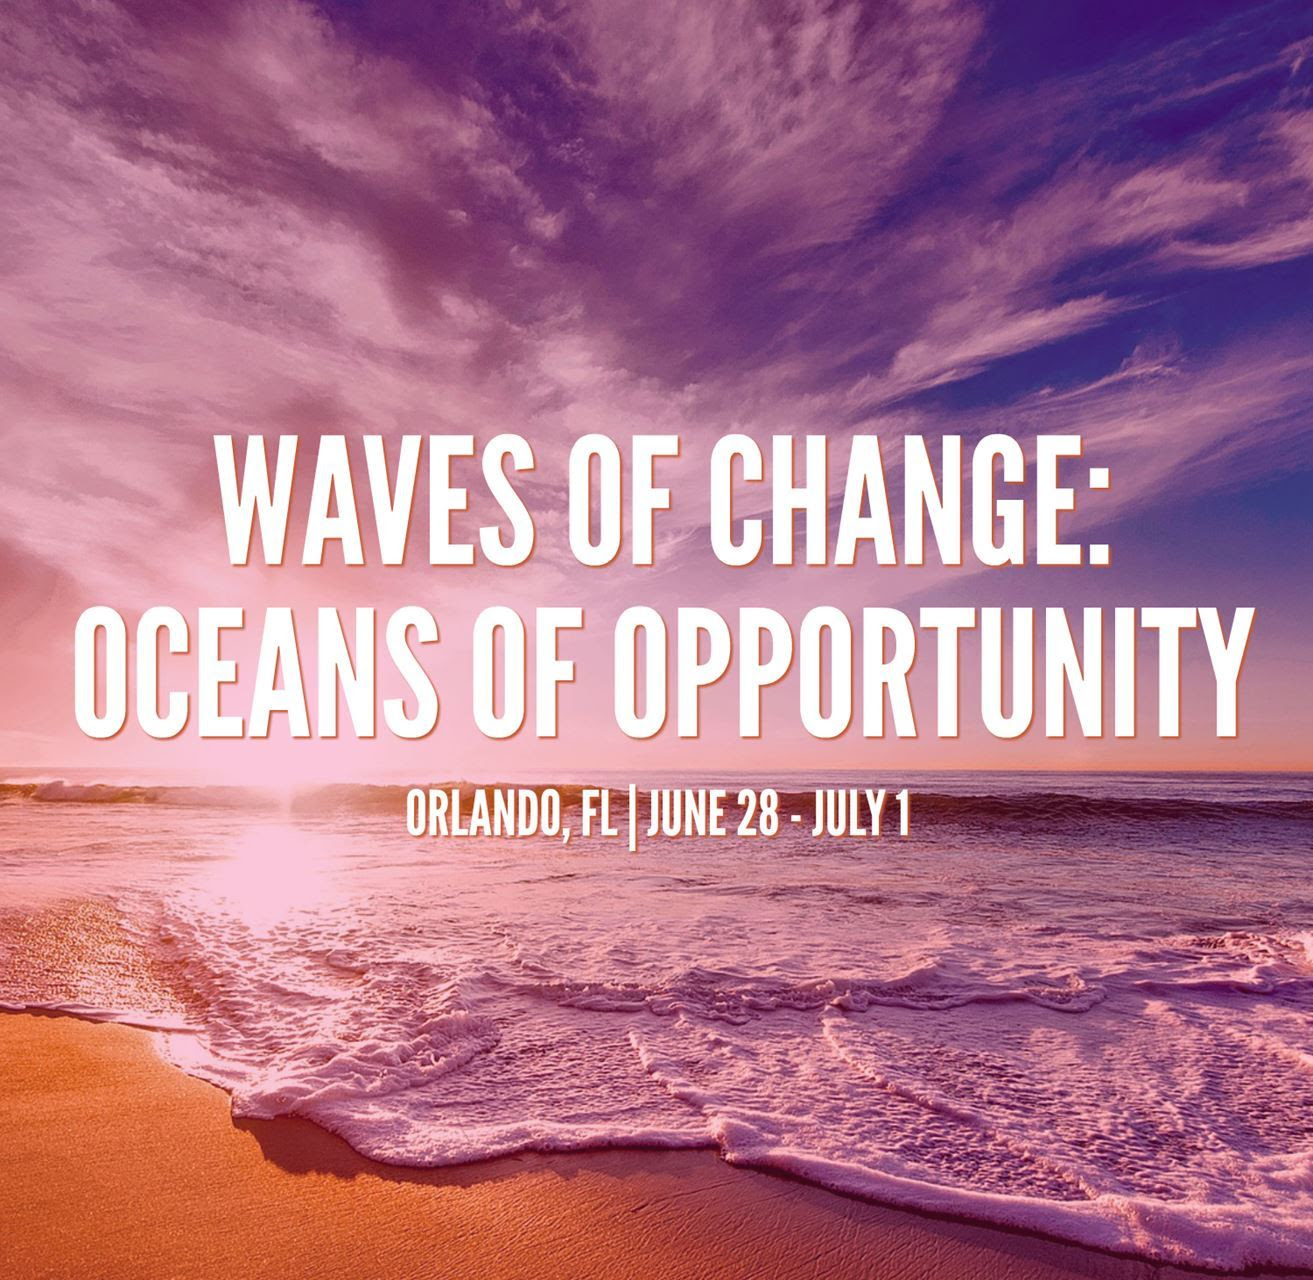 Waves of Change: Oceans of Opportunity